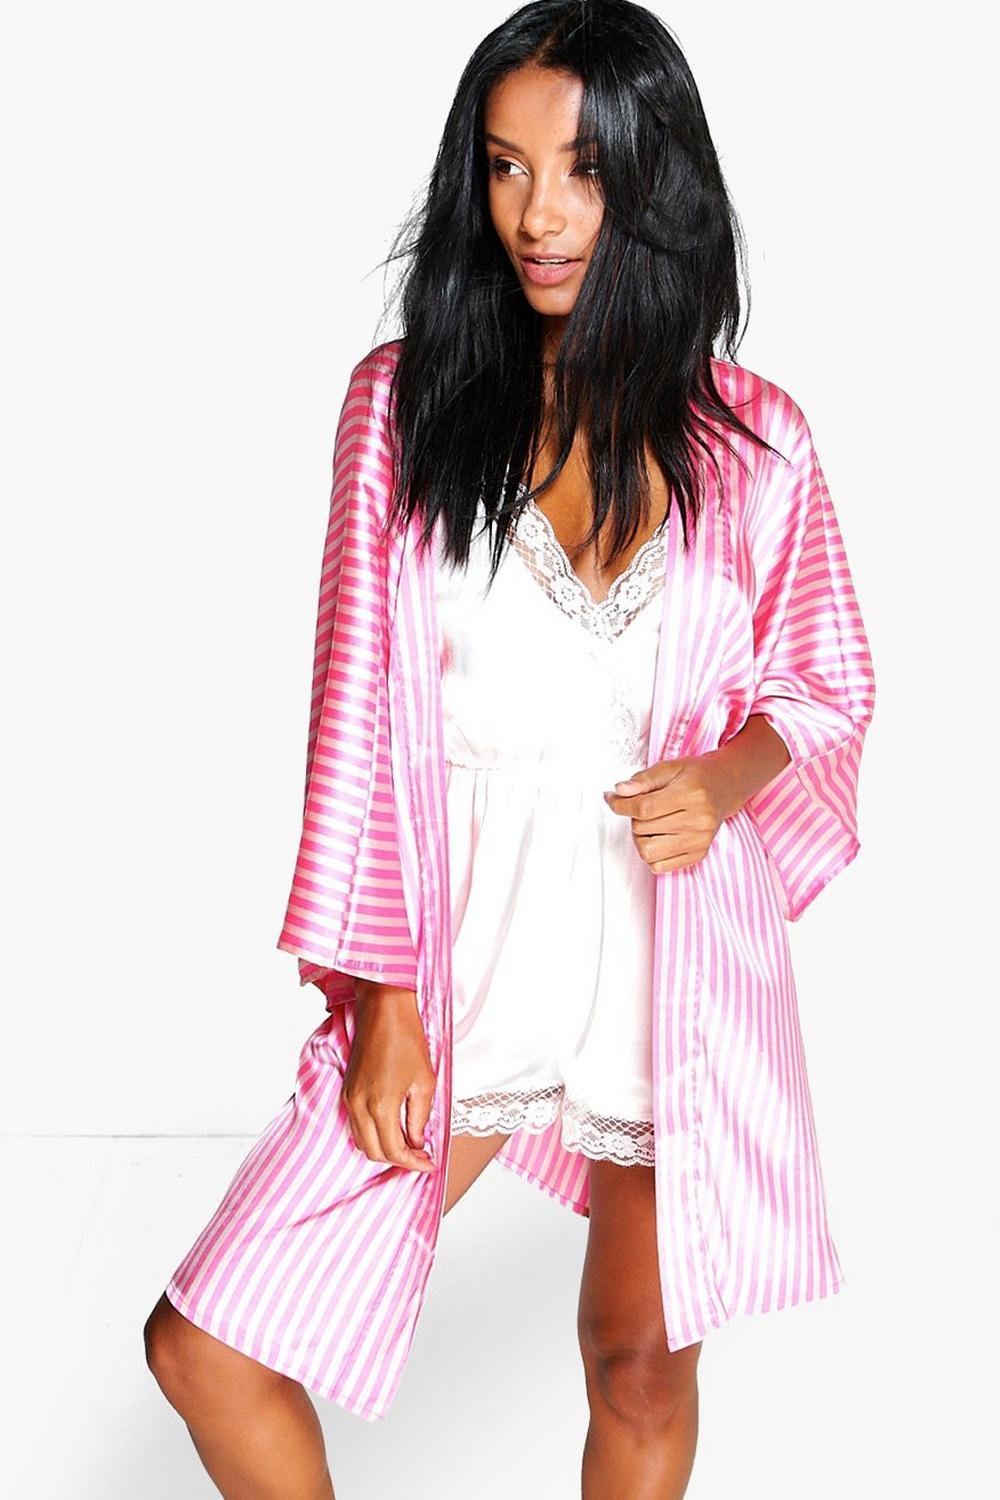 Stripe pink Stripe Robe pink Robe Robe Robe Stripe Stripe Candy Candy pink Candy pink Stripe Candy Candy 7nCPx